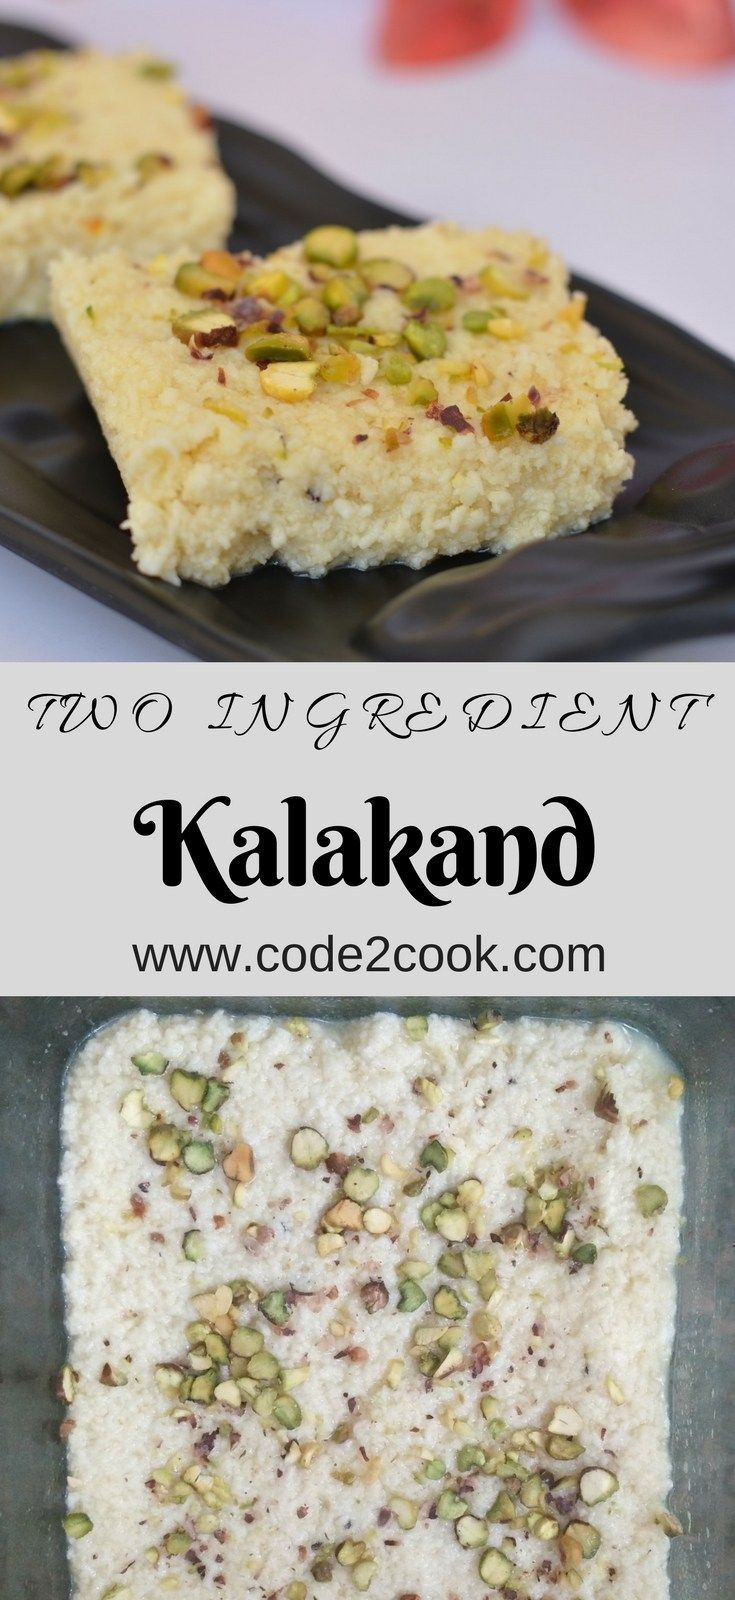 Quick And Easy Kalakand Kalakand Recipe Sweet Recipes Desserts Easy Indian Dessert